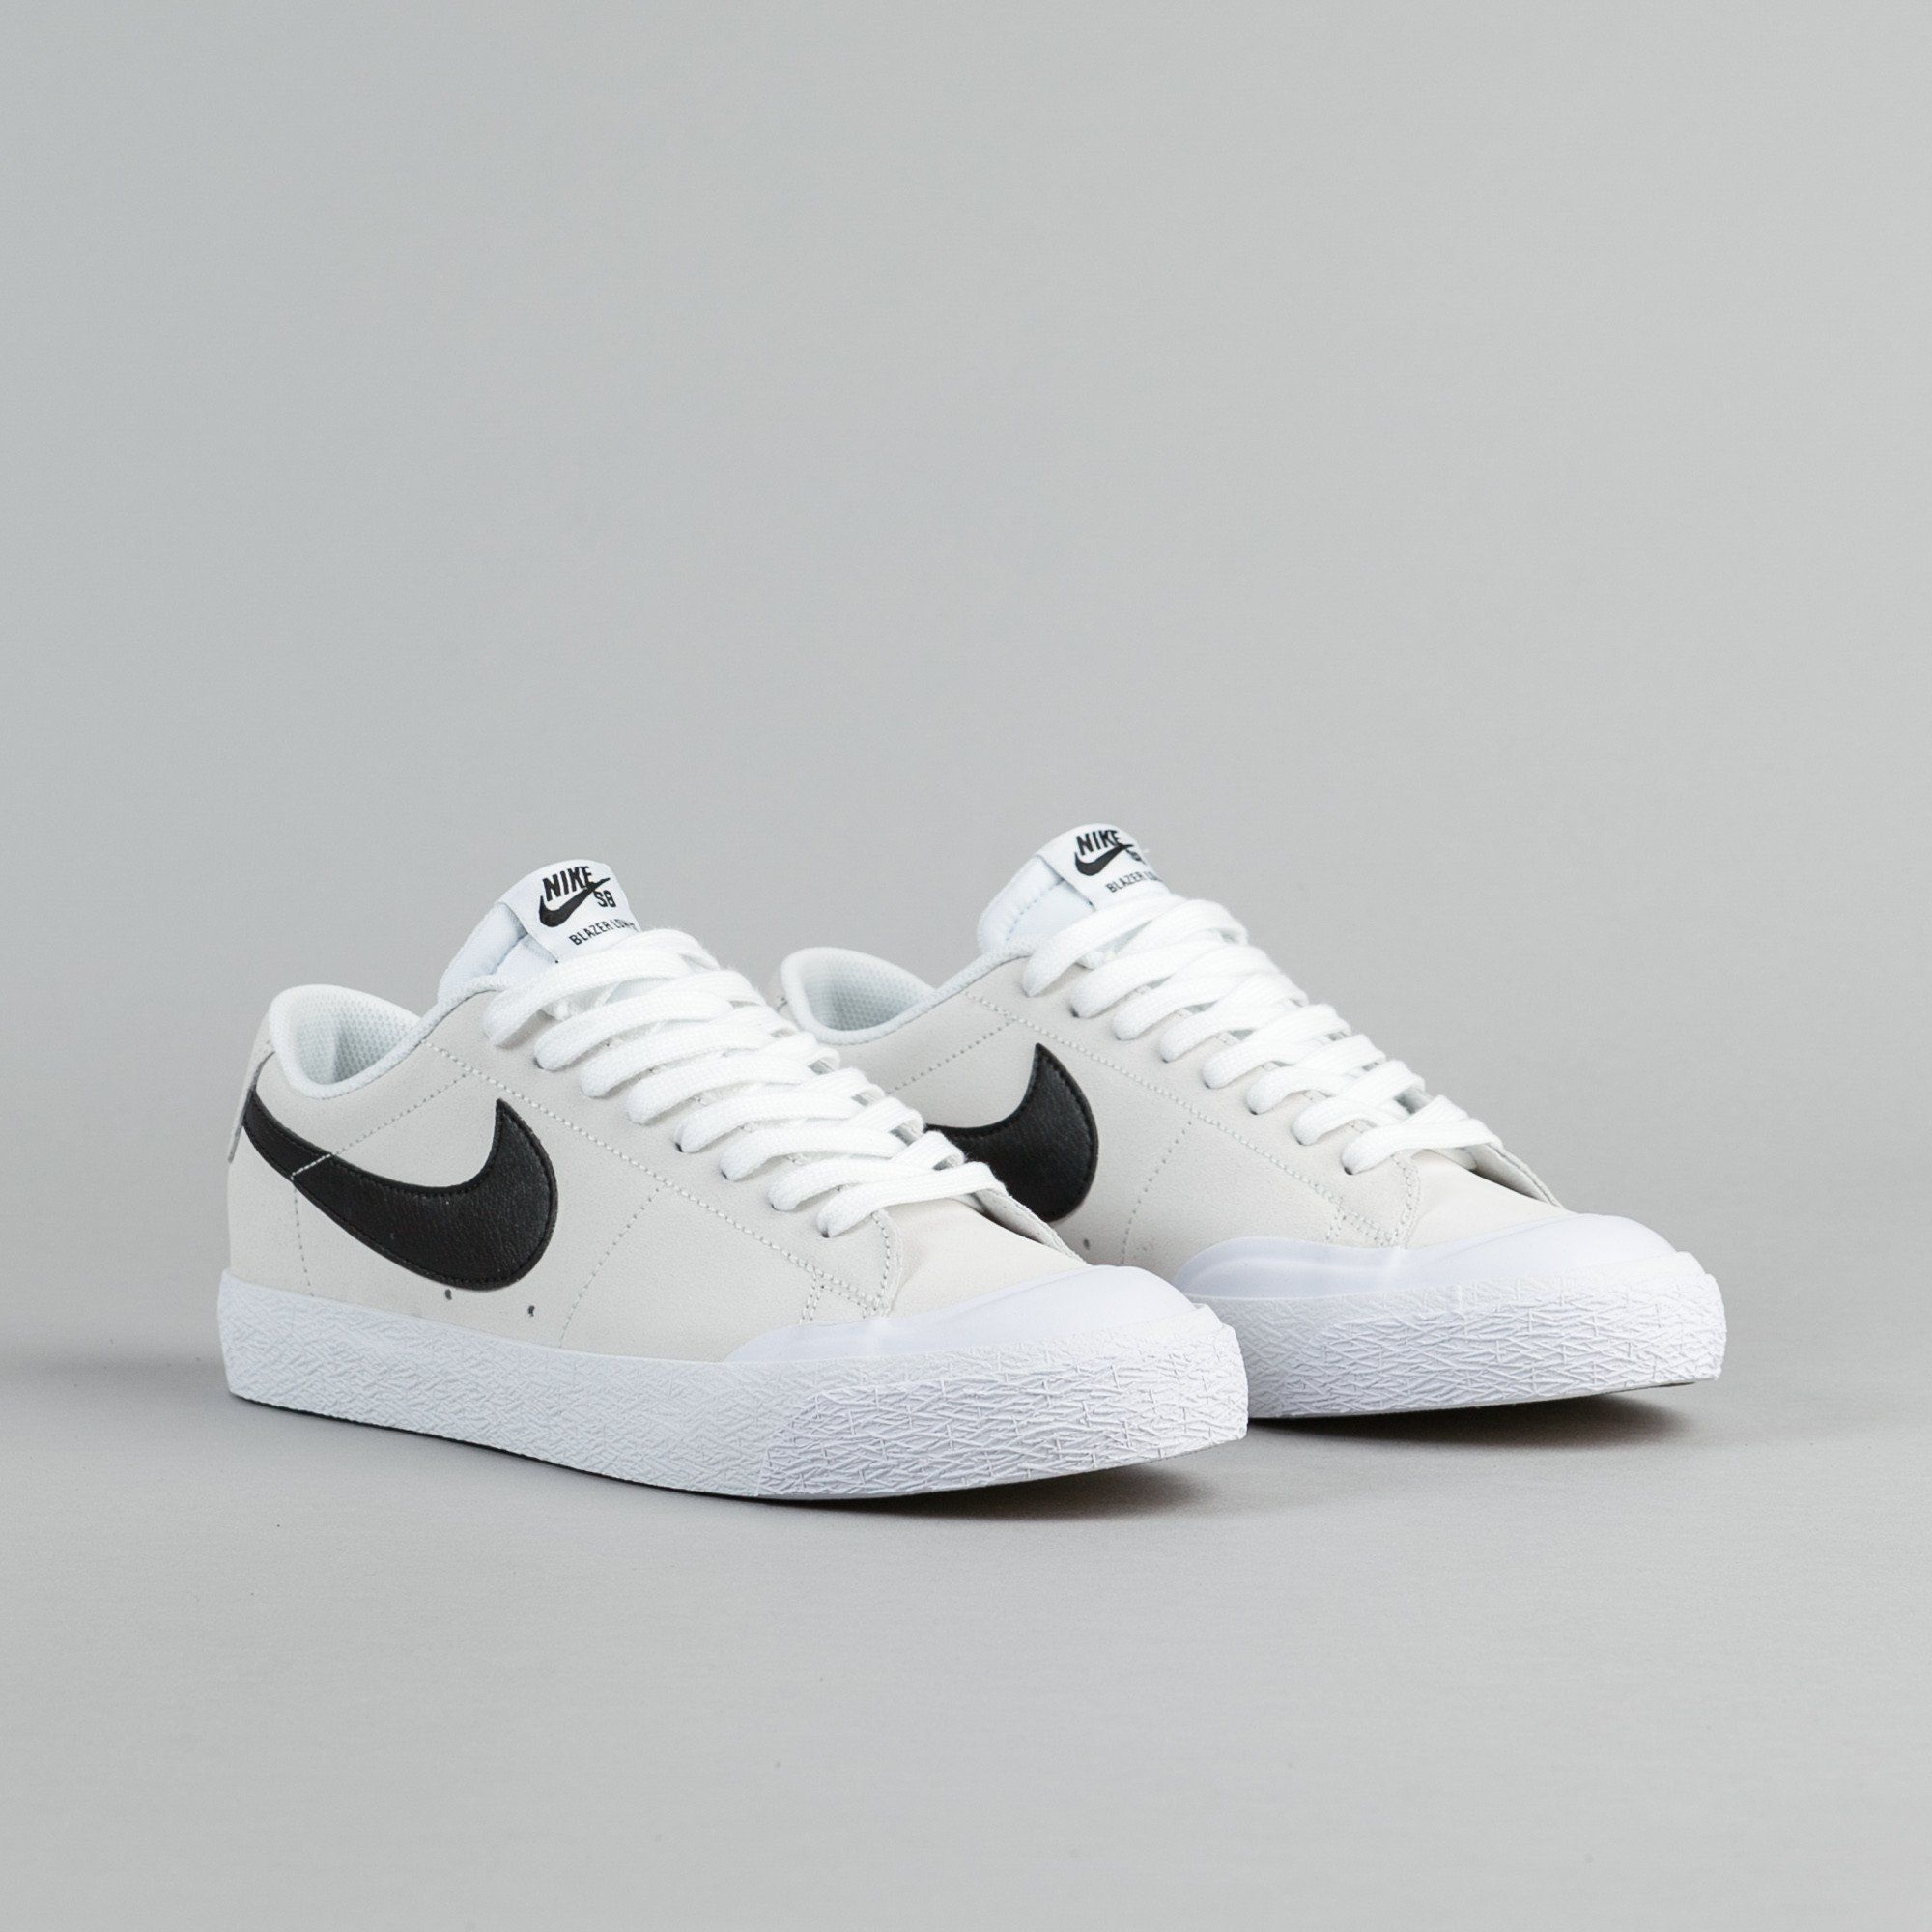 New Trendy Nike Blazer Low Black/White/Gum Light Brown For Women Sale